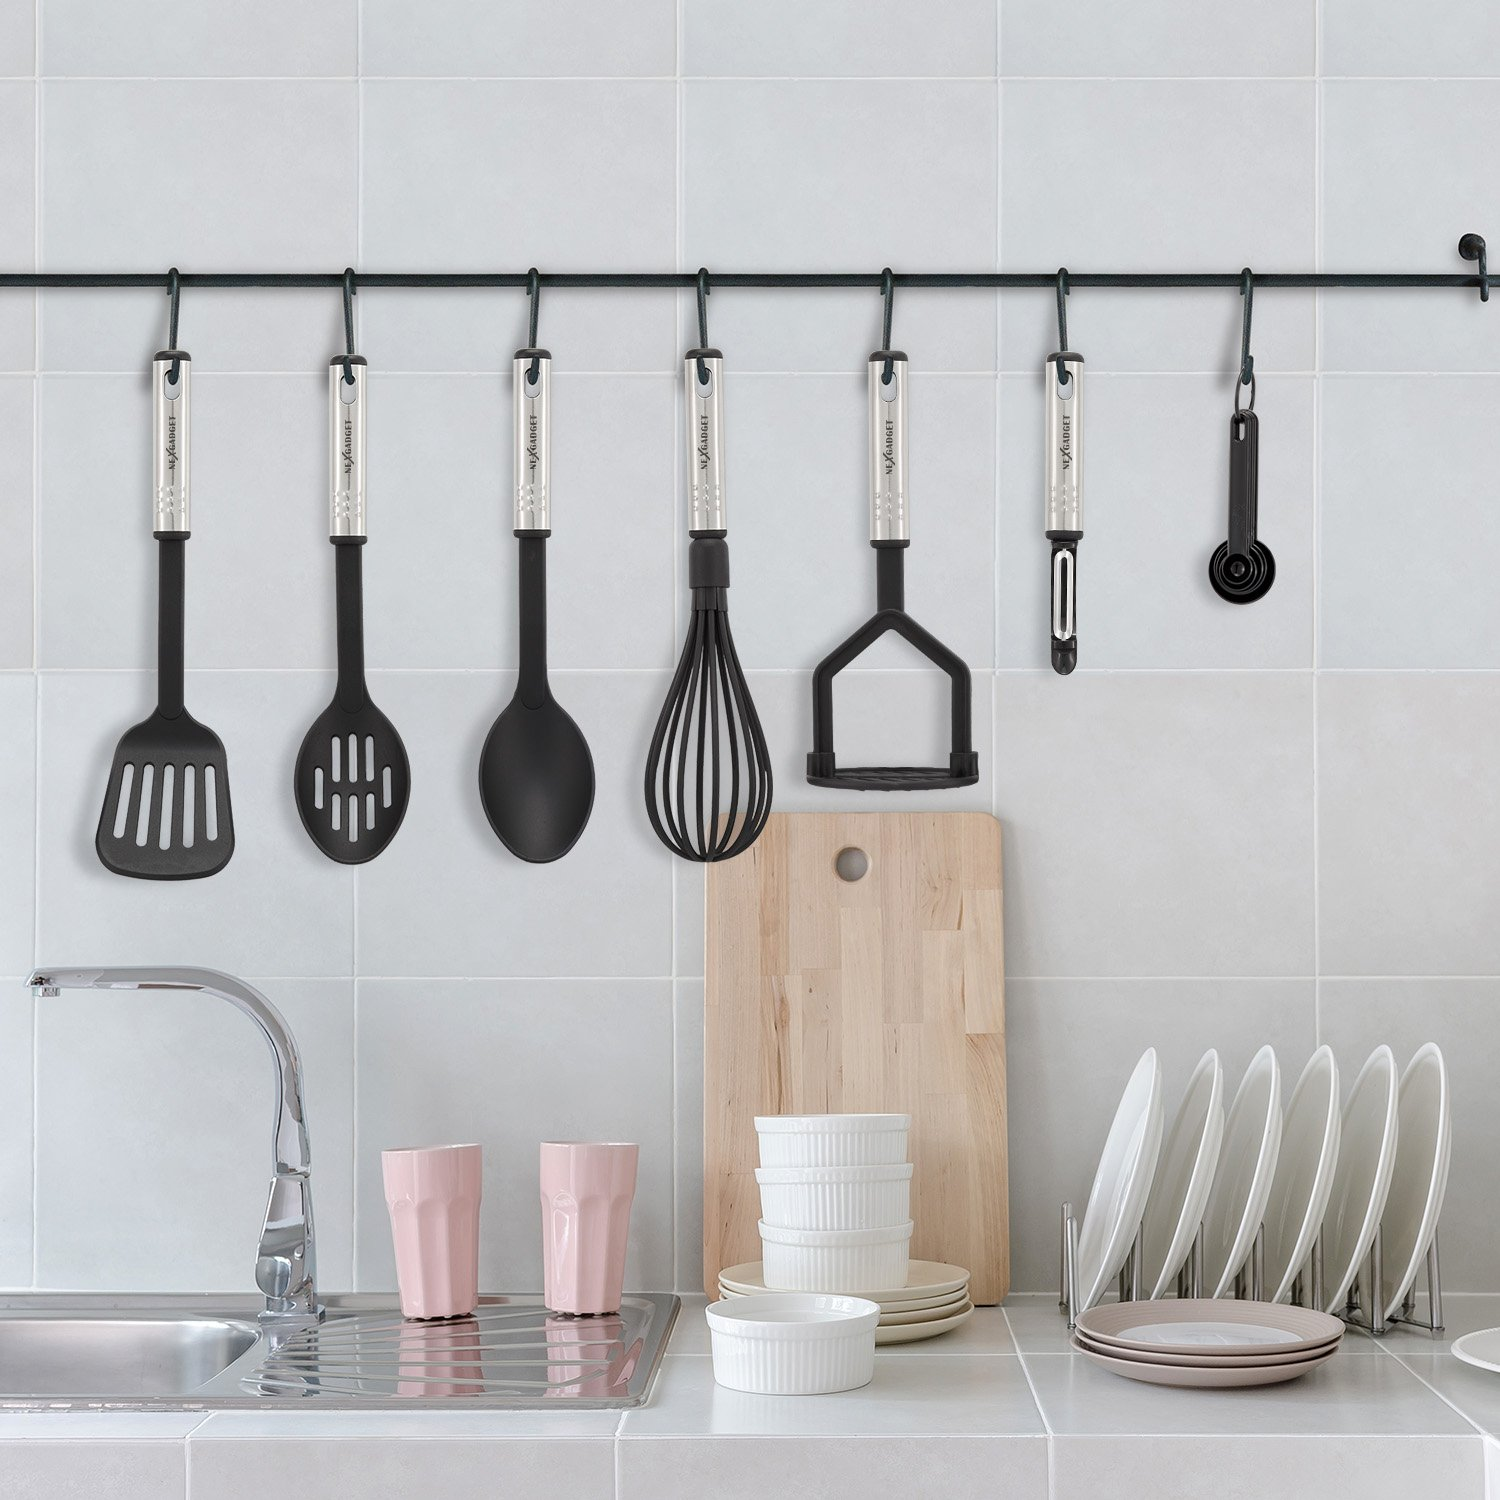 NexGadget Premium Kitchen Utensils 38 Pieces Kitchen Utensils Sets Stainless Steel And Nylon Cooking Tools Spoons, Turners, Tongs, Spatulas, Pizza Cutter, Whisk And More by NEXGADGET (Image #7)